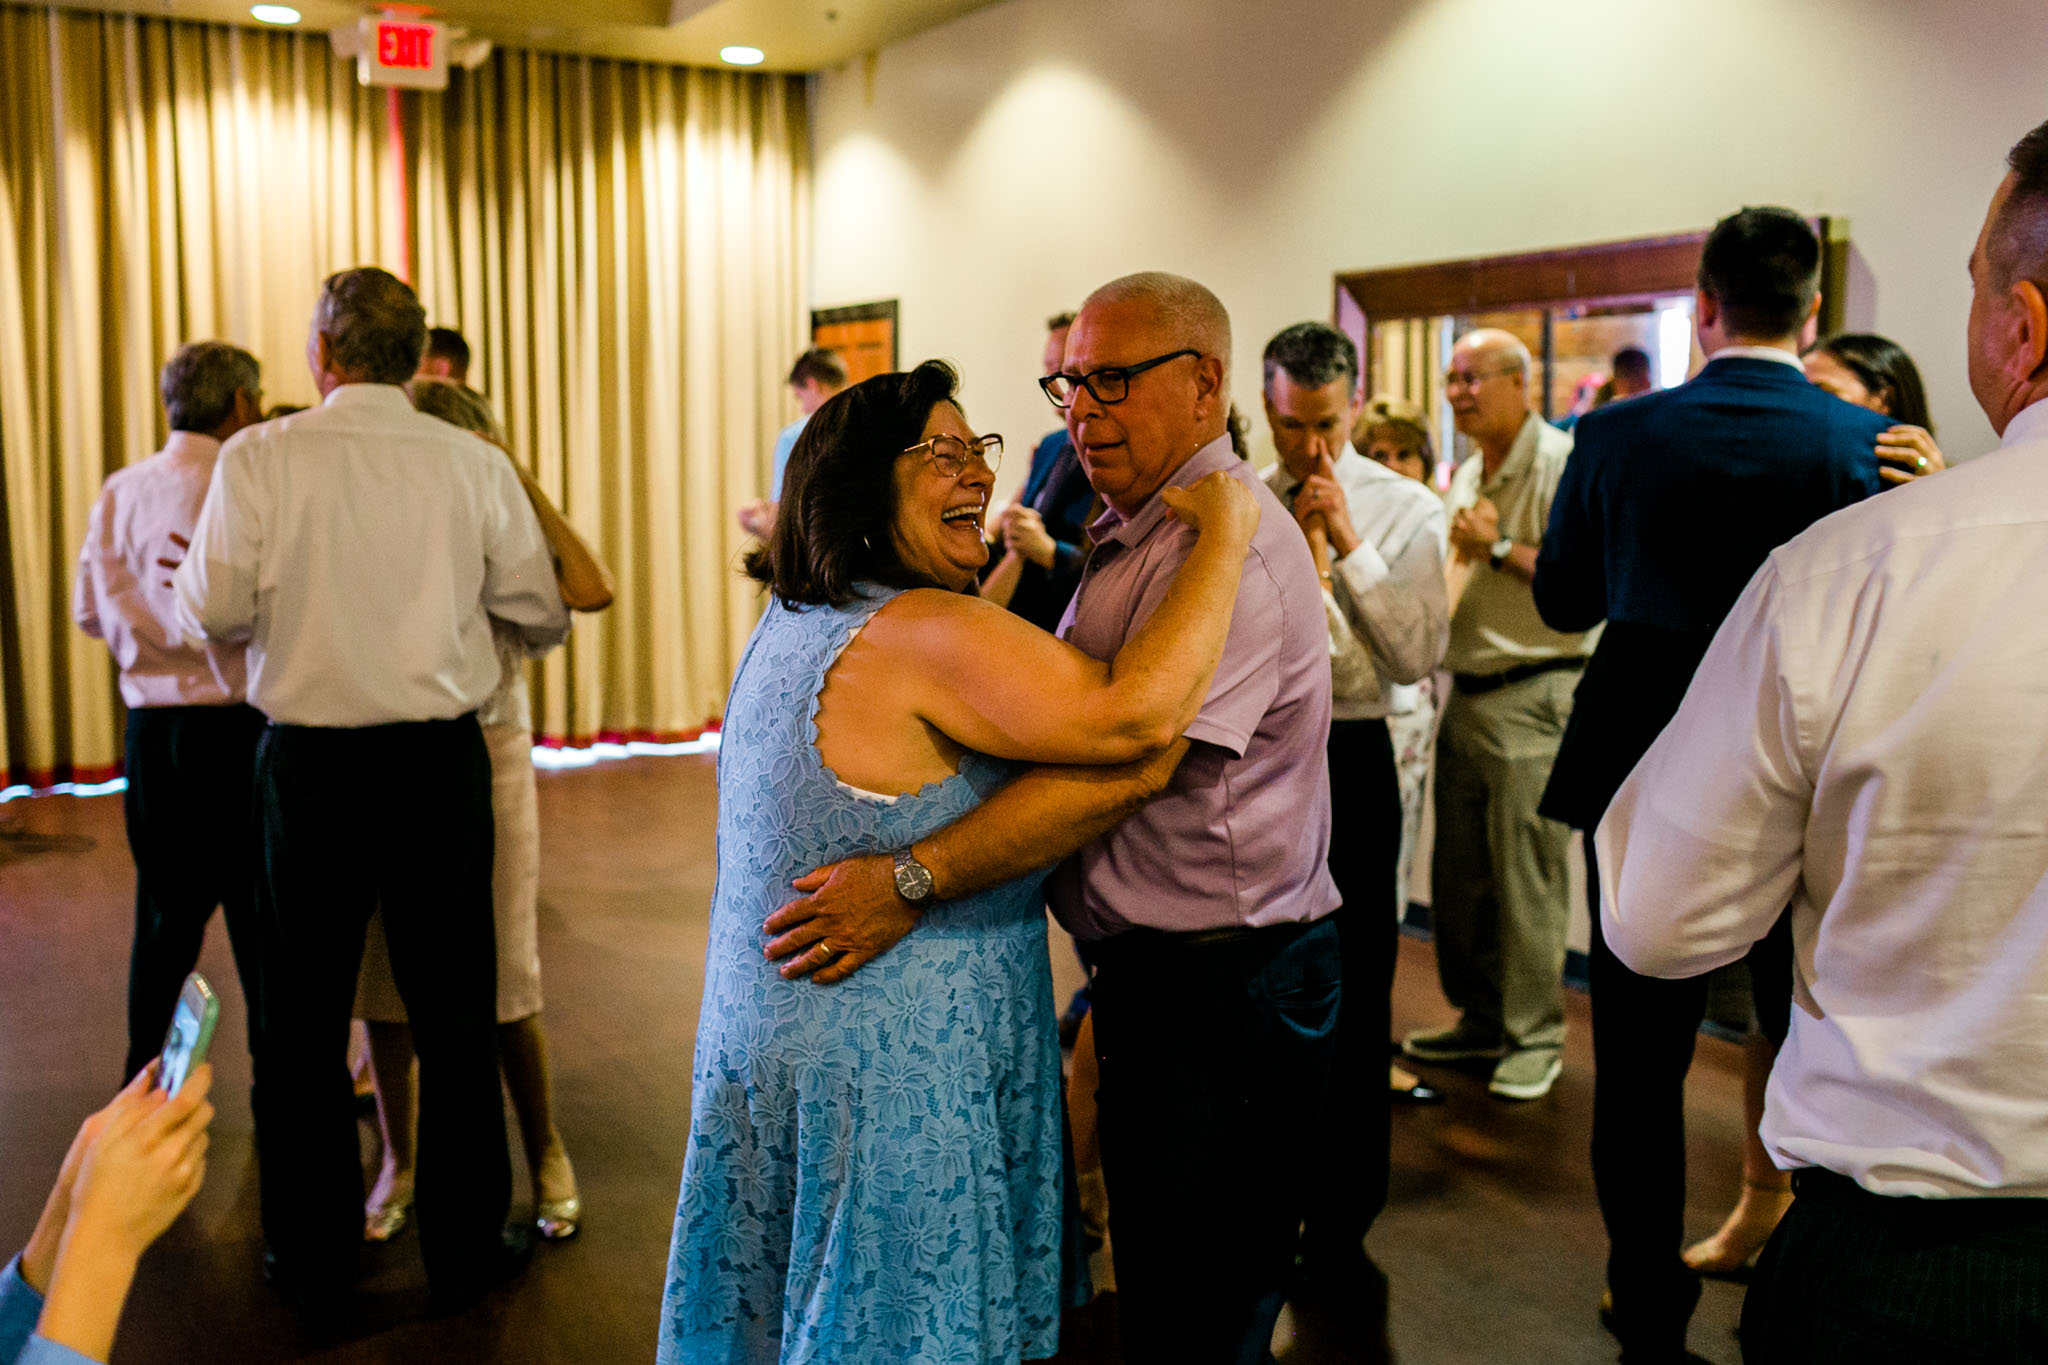 Man and woman dancing at reception | Royal Banquet Conference Center |People dancing at wedding reception at Royal Banquet Conference Center | Raleigh Wedding Photographer | By G. Lin Photography